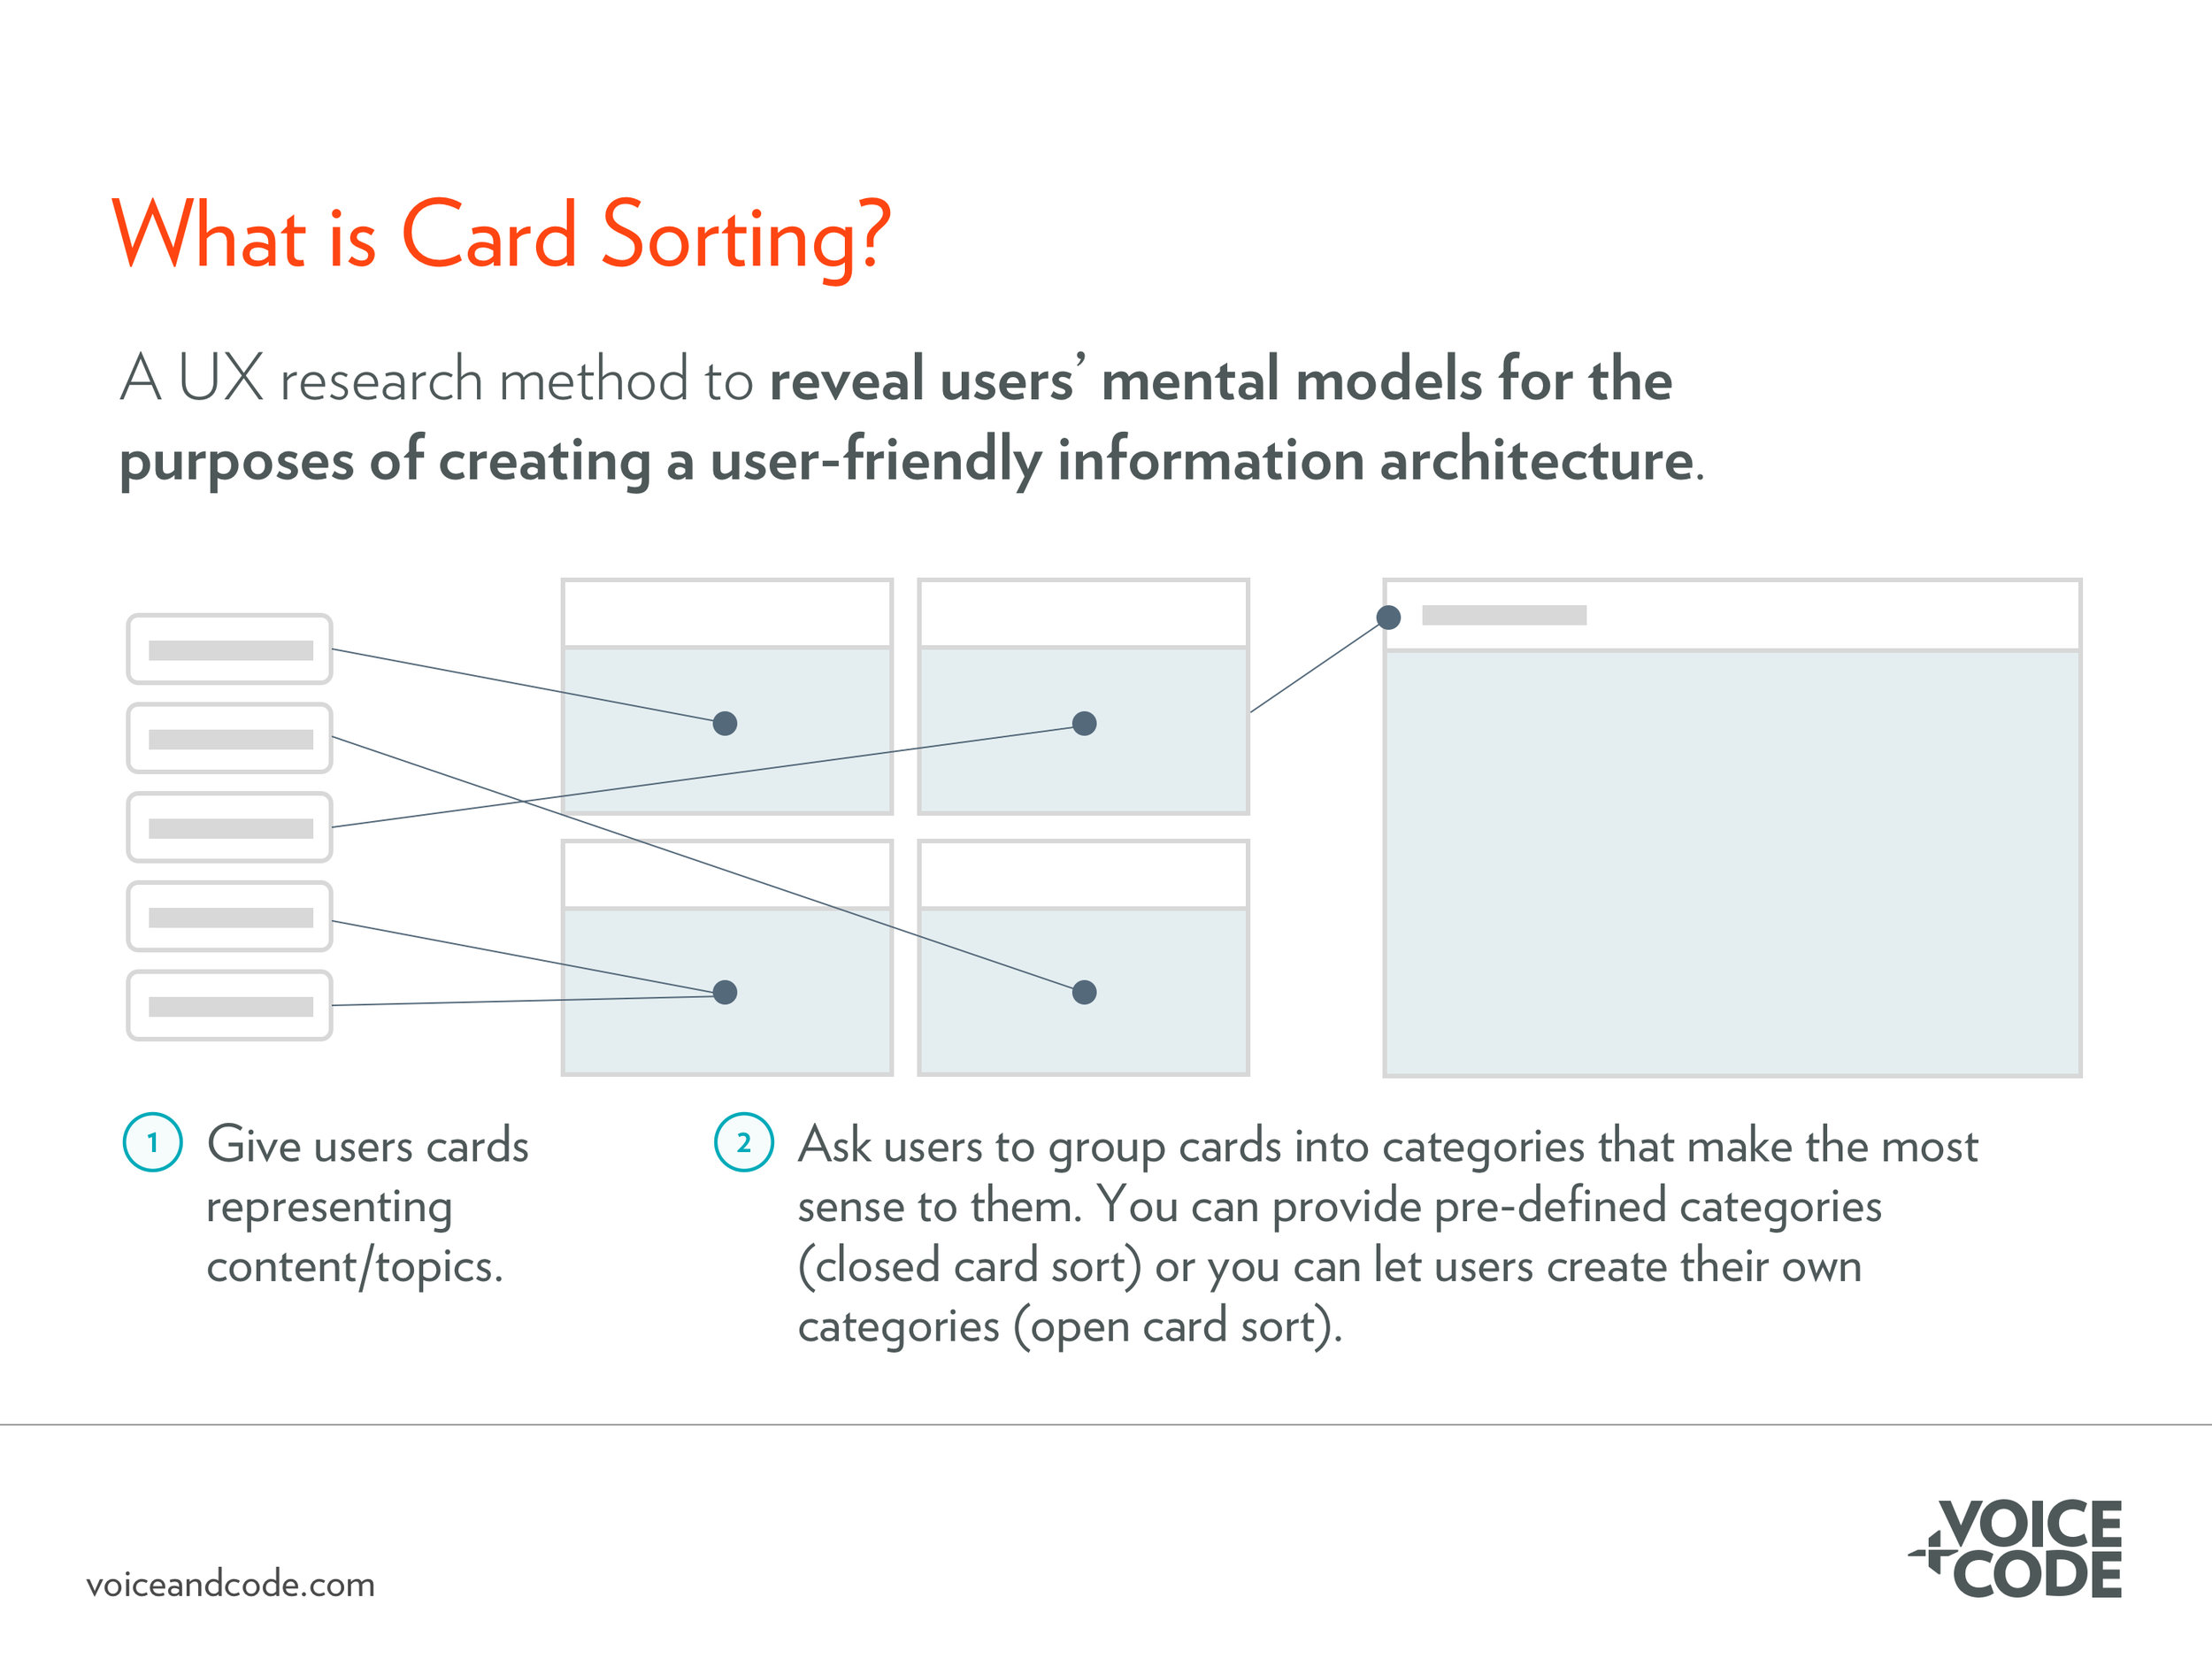 Card sorting helps improve the information architecture